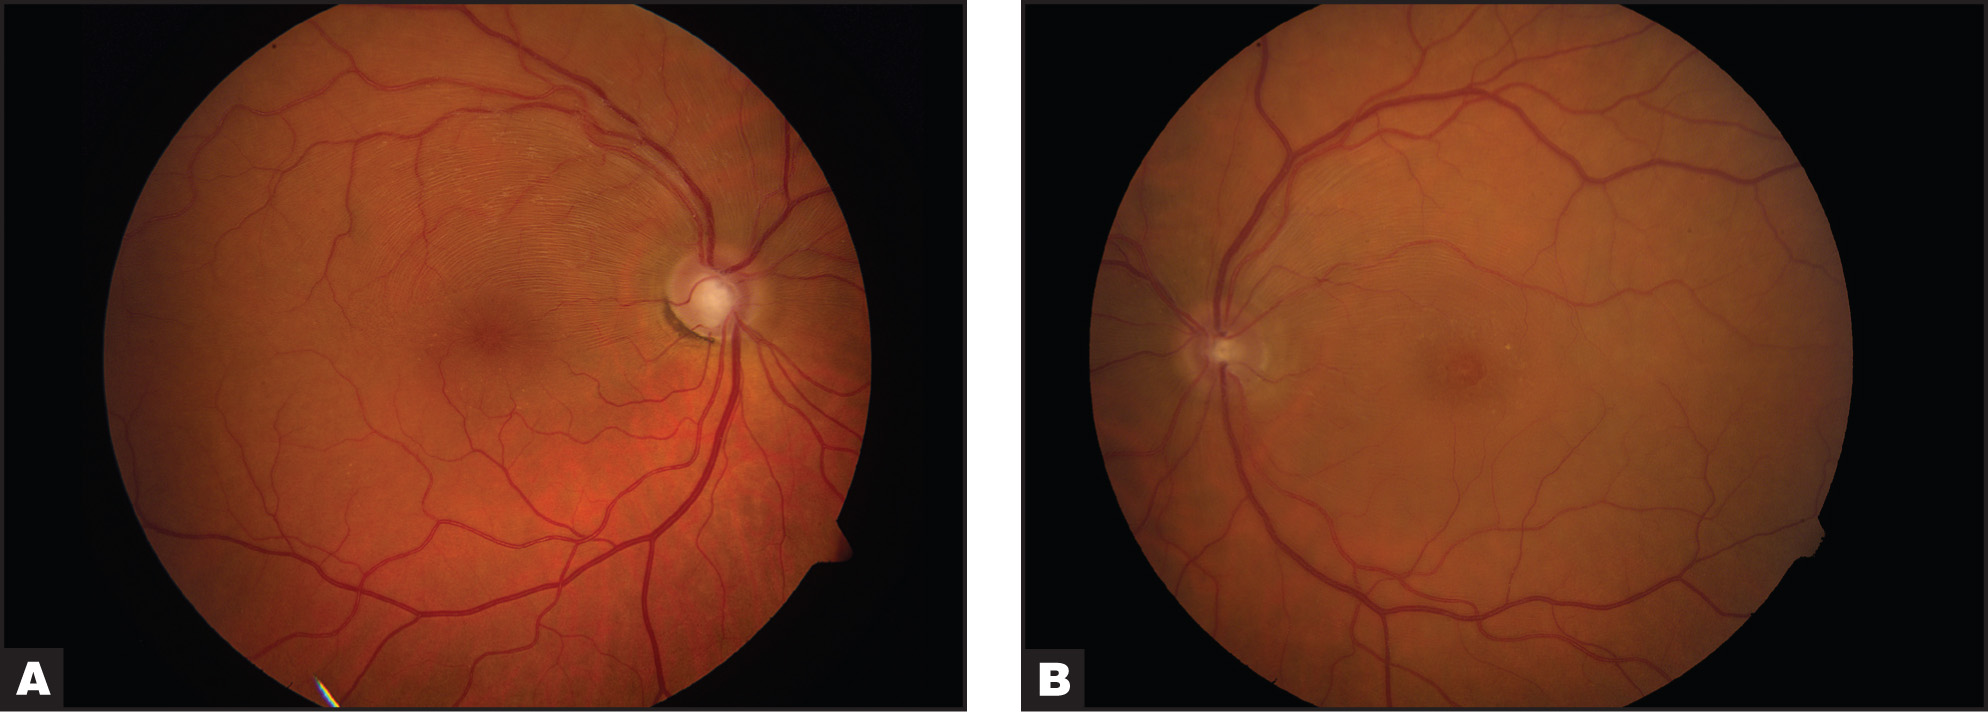 Color Photographs of the (A) Right and (B) Left Eyes Showing Macular Edema, Prominent Nerve Fiber Layer, and Appearance of Macular Pseudohole Formation in the Left Eye.